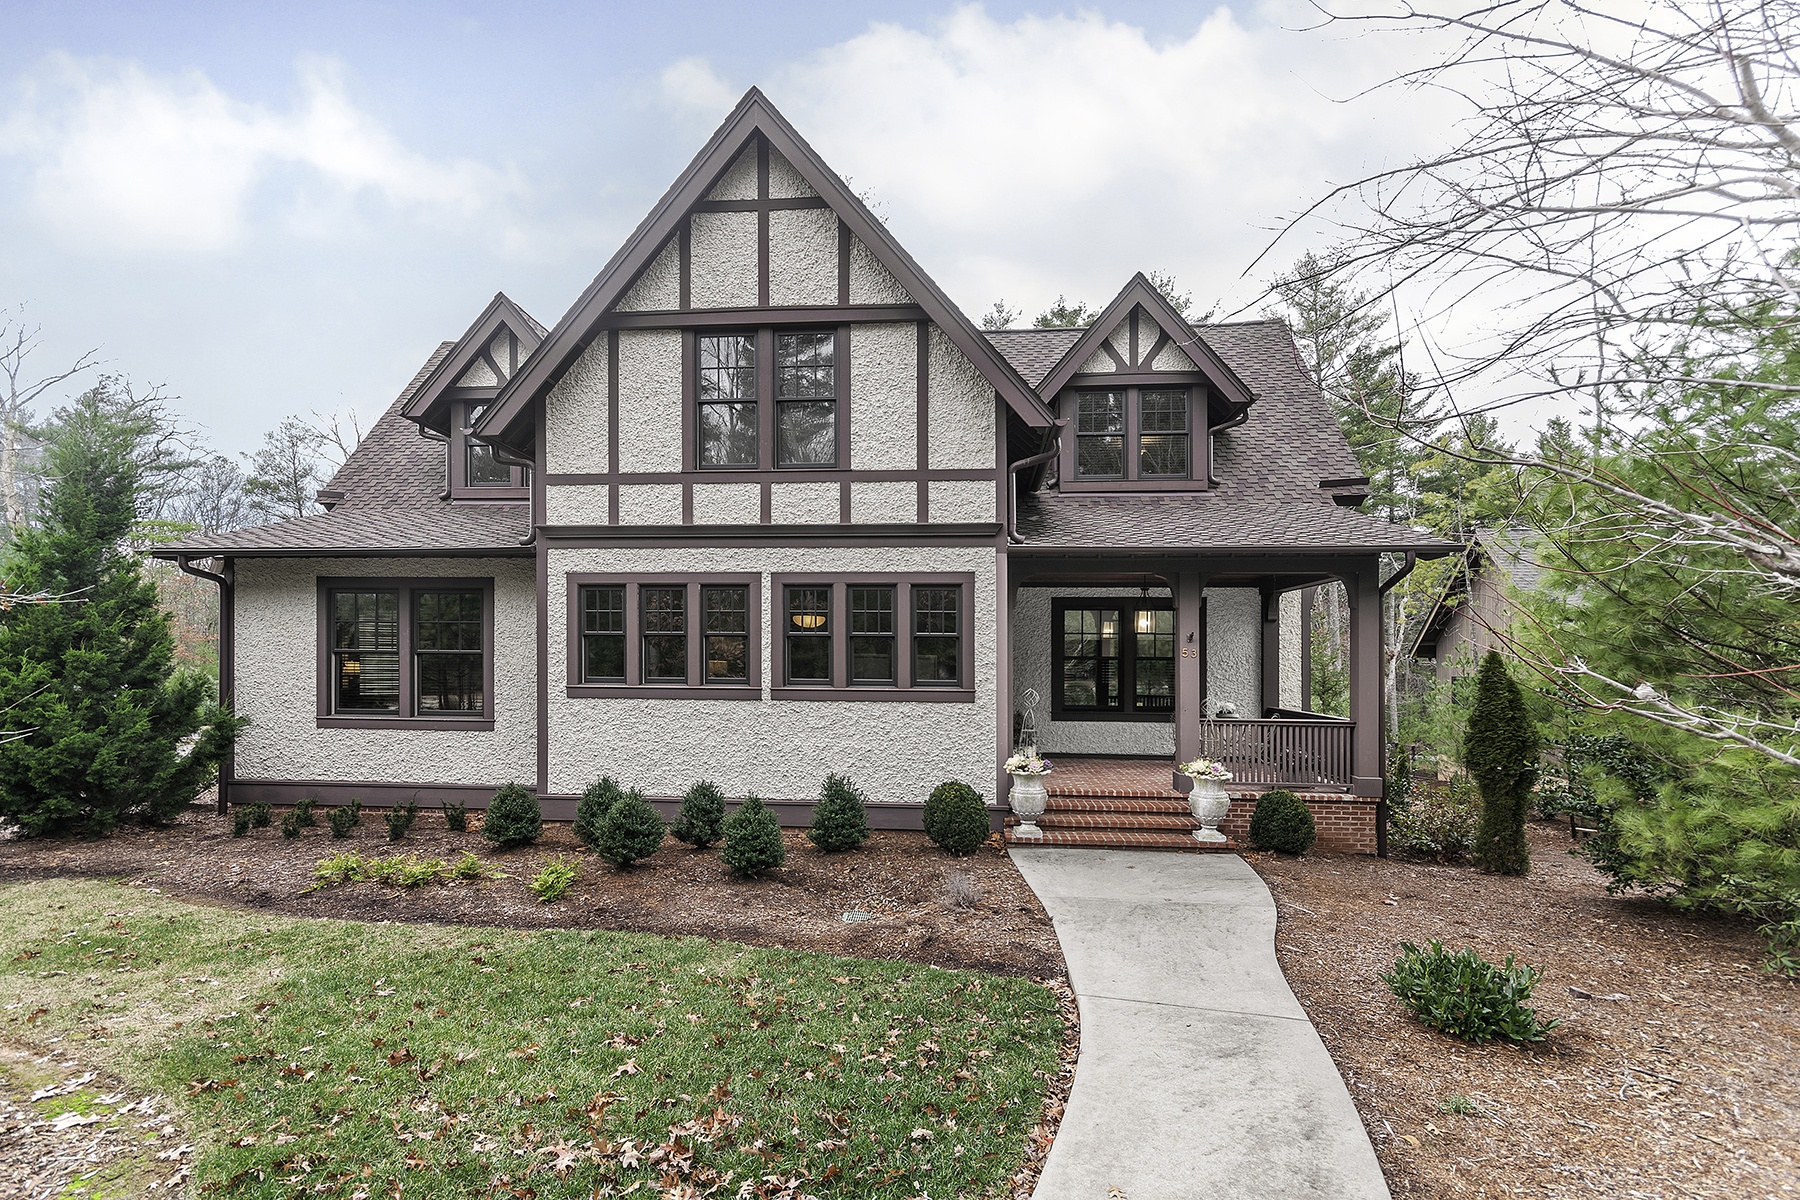 Single Family Home for Sale at RAMBLE BILTMORE FOREST 53 Nethermead Dr Asheville, North Carolina, 28803 United States